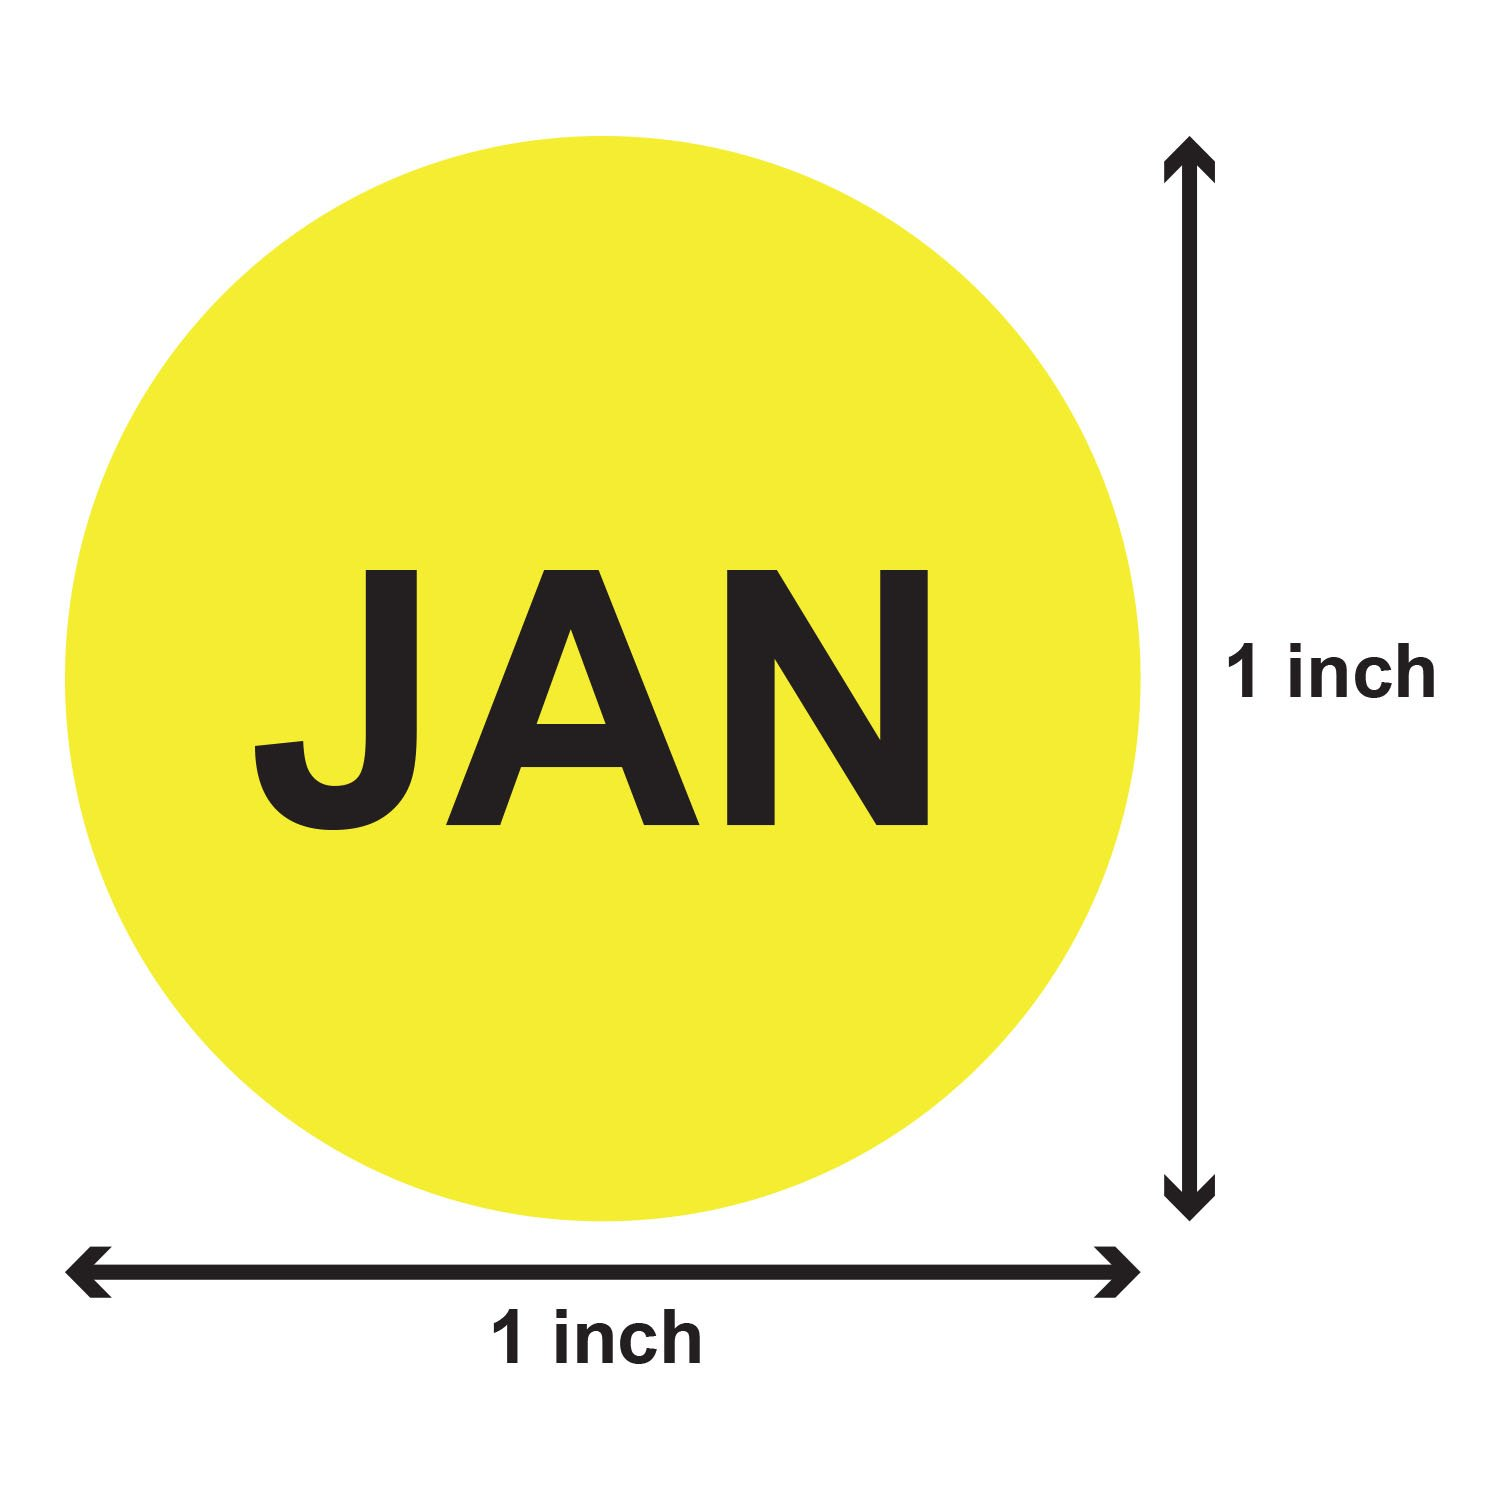 12 Months of the Year Labels Color Coding Dot Round Self Adhesive Stickers (1'' Round Dot Stickers) - 300 stickers per Month - 3600 stickers total by OfficeSmartLabels (Image #2)